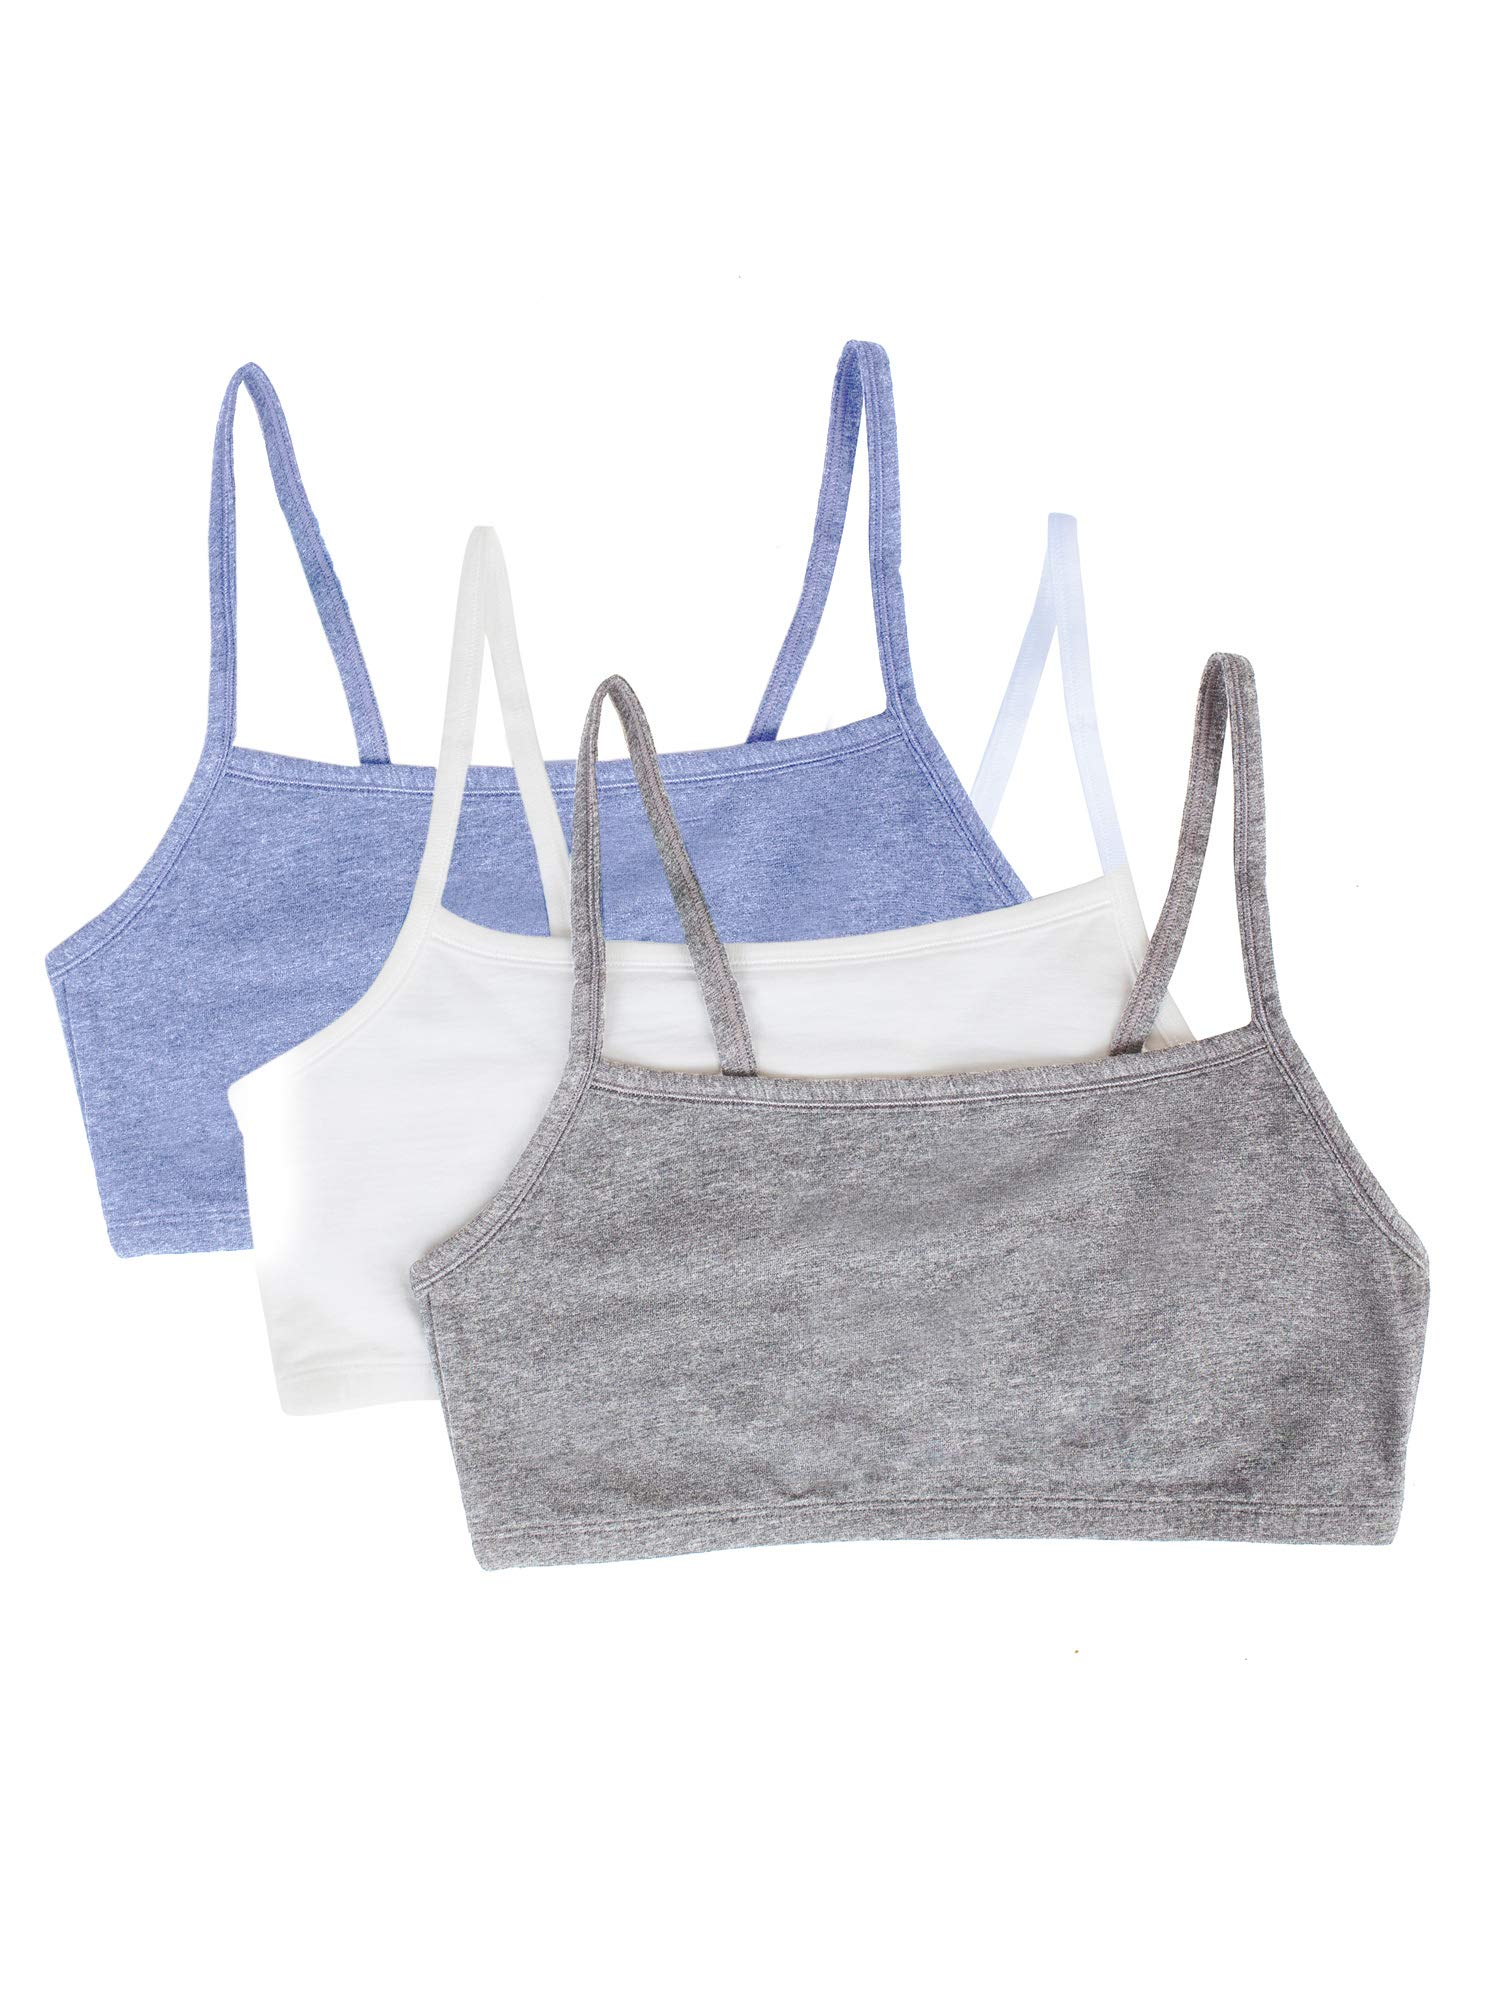 Fruit of the Loom womens Cotton Pullover Sport Bra, heather grey/white/heather blue 42 by Fruit of the Loom